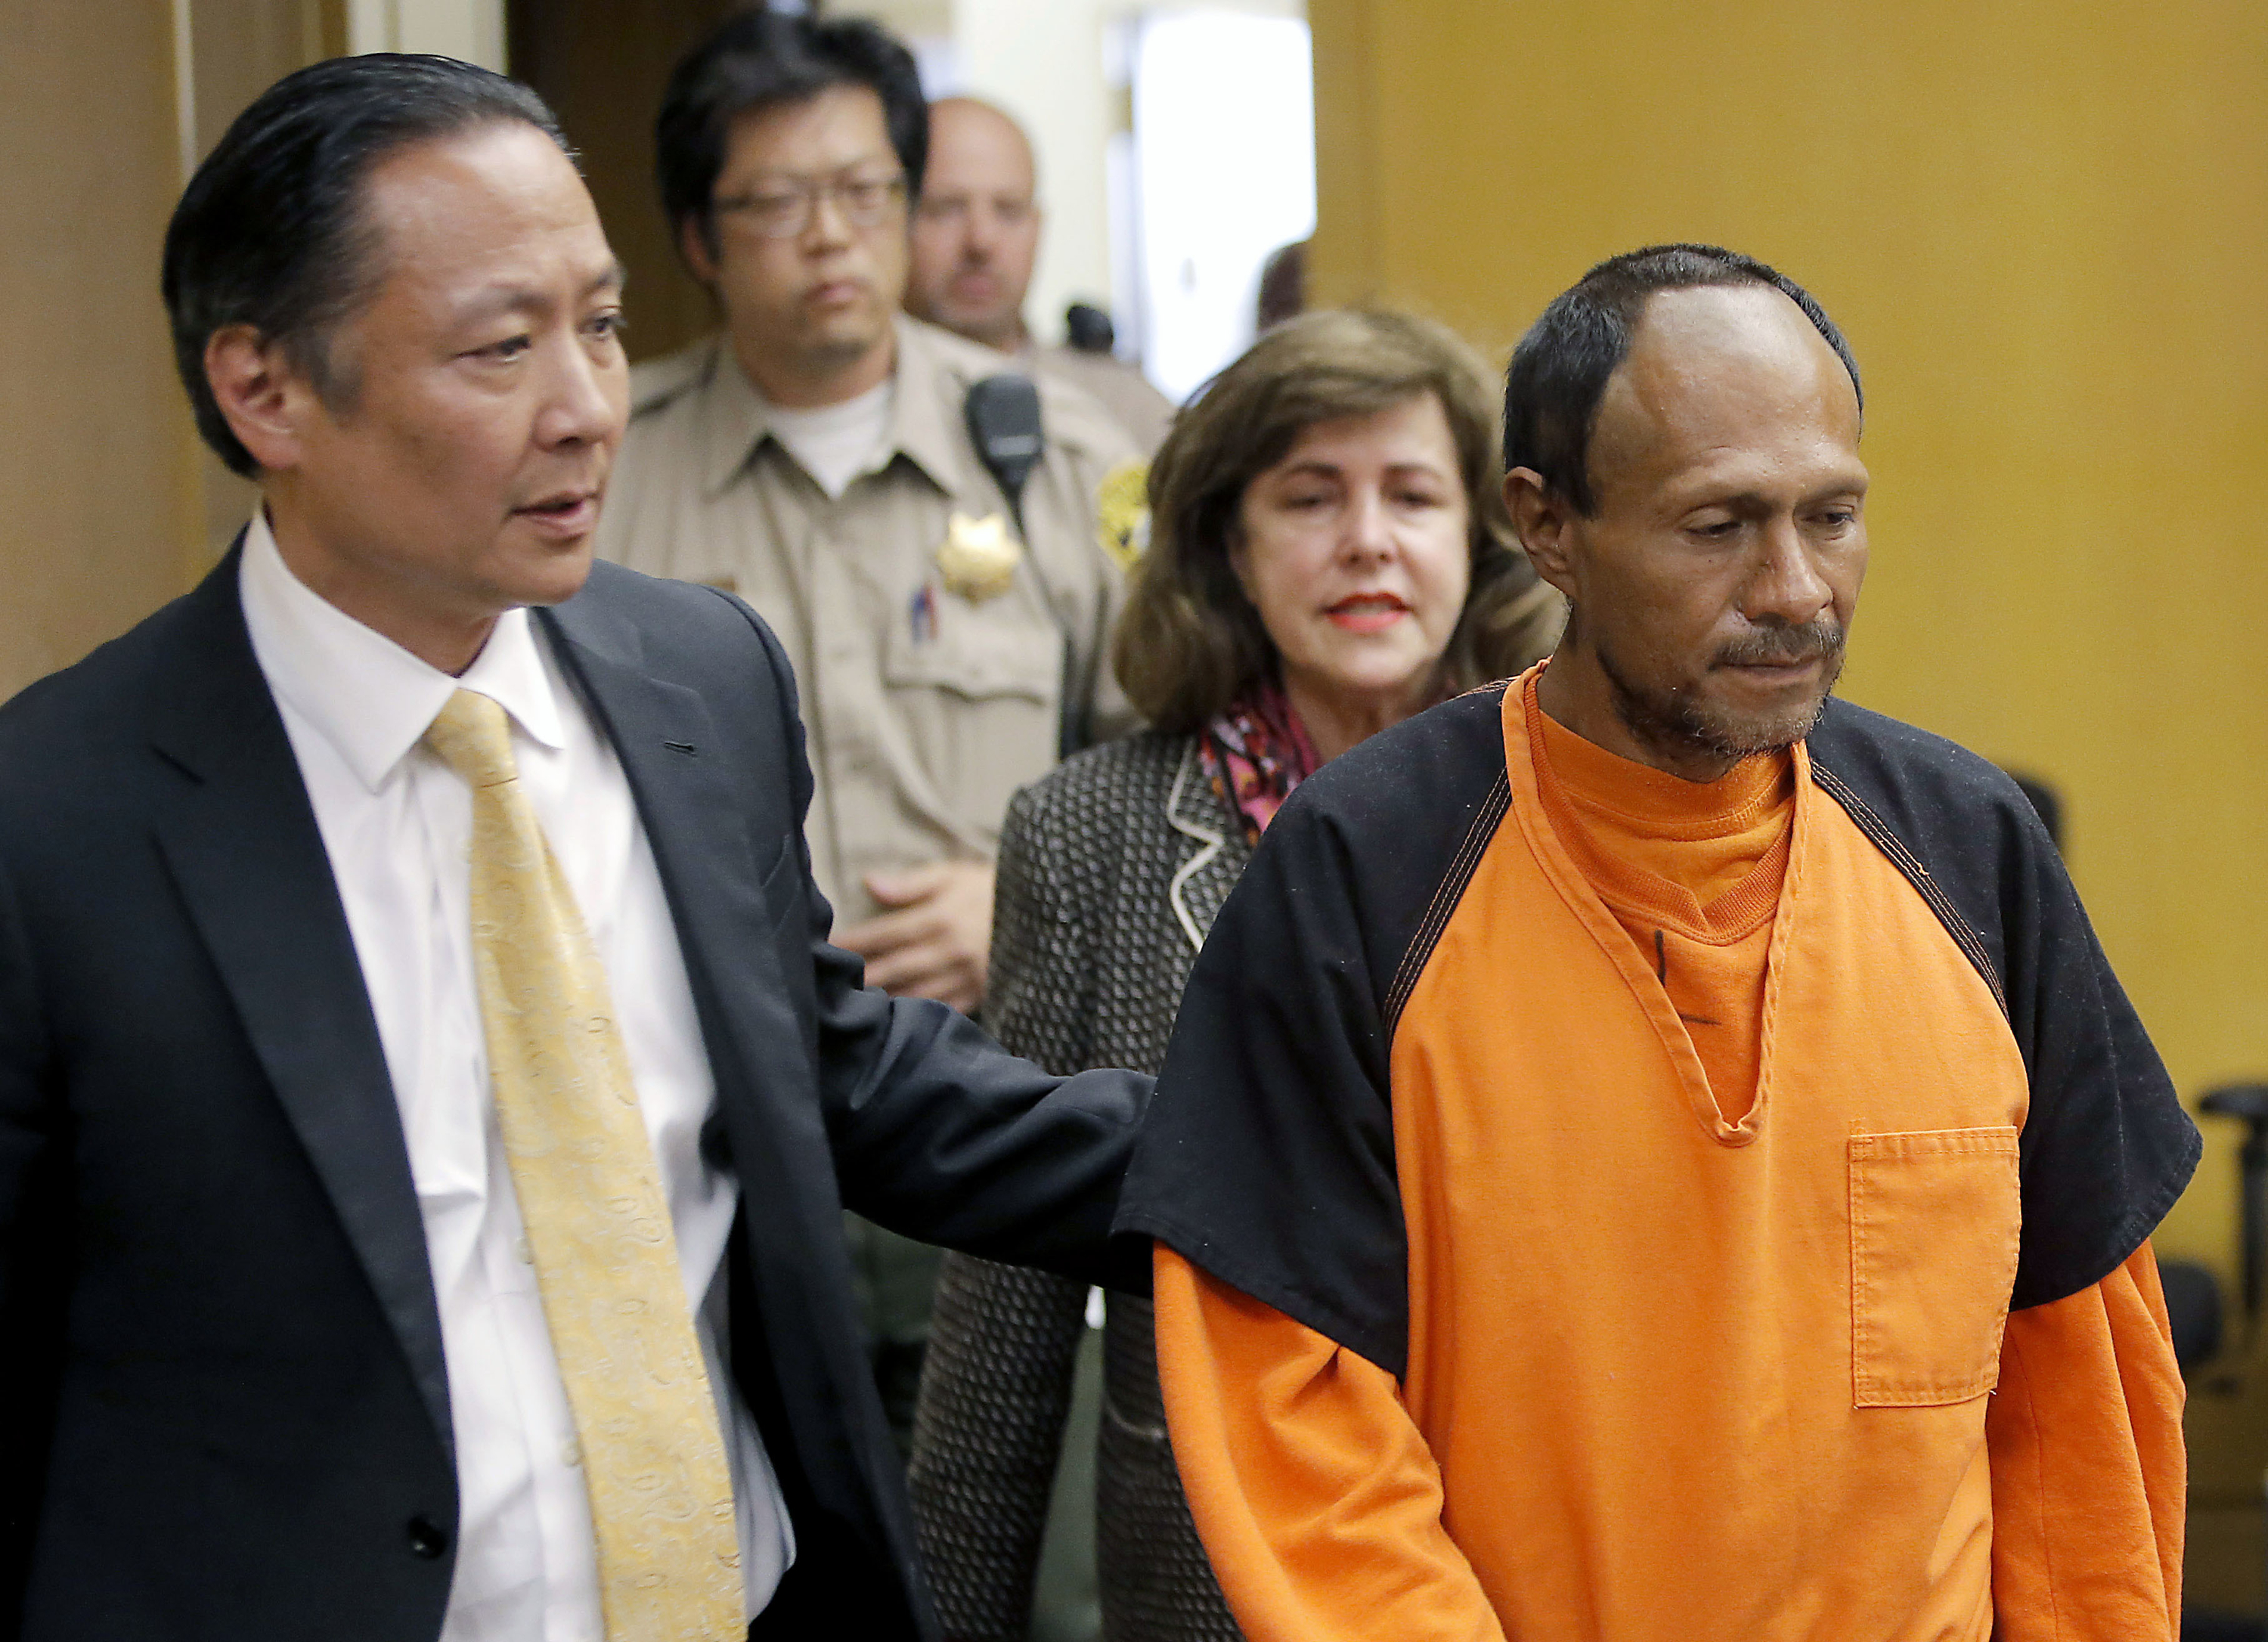 FILE - In this July 7, 2015 file photo, Jose Ines Garcia Zarate, right, is led into the courtroom by San Francisco Public Defender Jeff Adachi, left, and Assistant District Attorney Diana Garciaor, center, for his arraignment at the Hall of Justice in San Francisco.{&amp;nbsp;} (Michael Macor/San Francisco Chronicle via AP, Pool, File)<p></p>